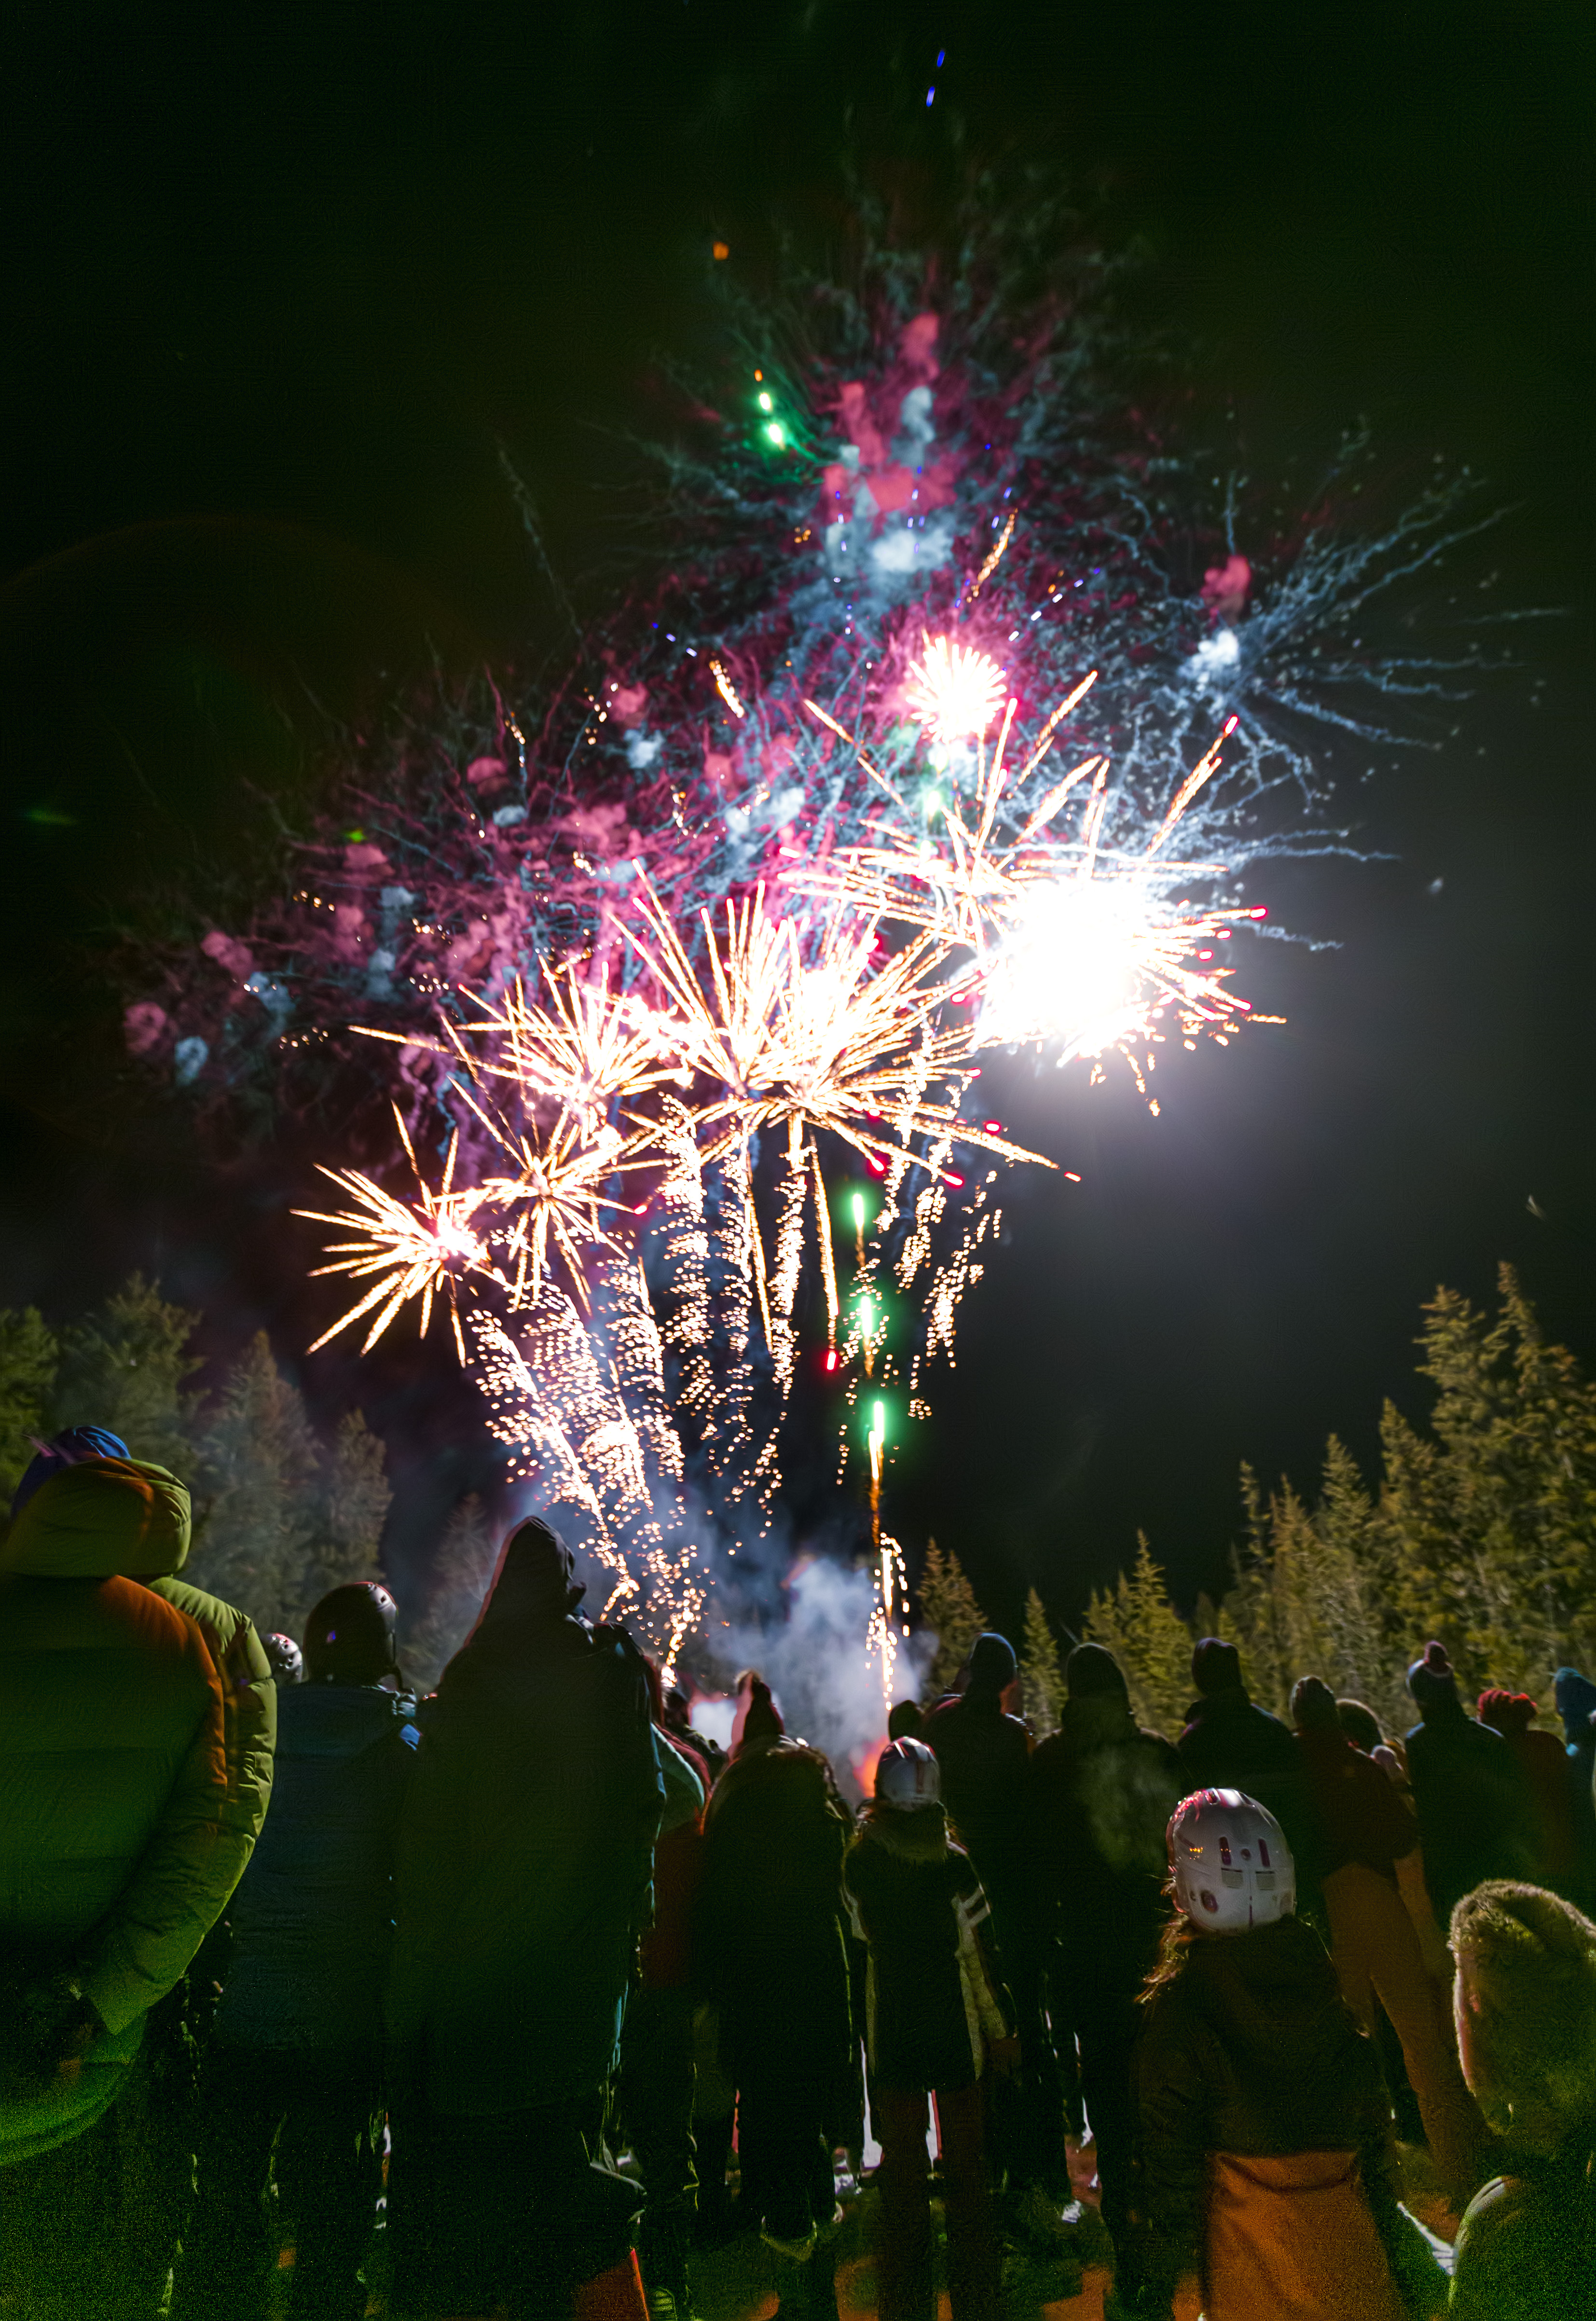 CELEBRATE THE NEW YEAR IN STYLE IN THE BOW VALLEY RMOTODAY COM